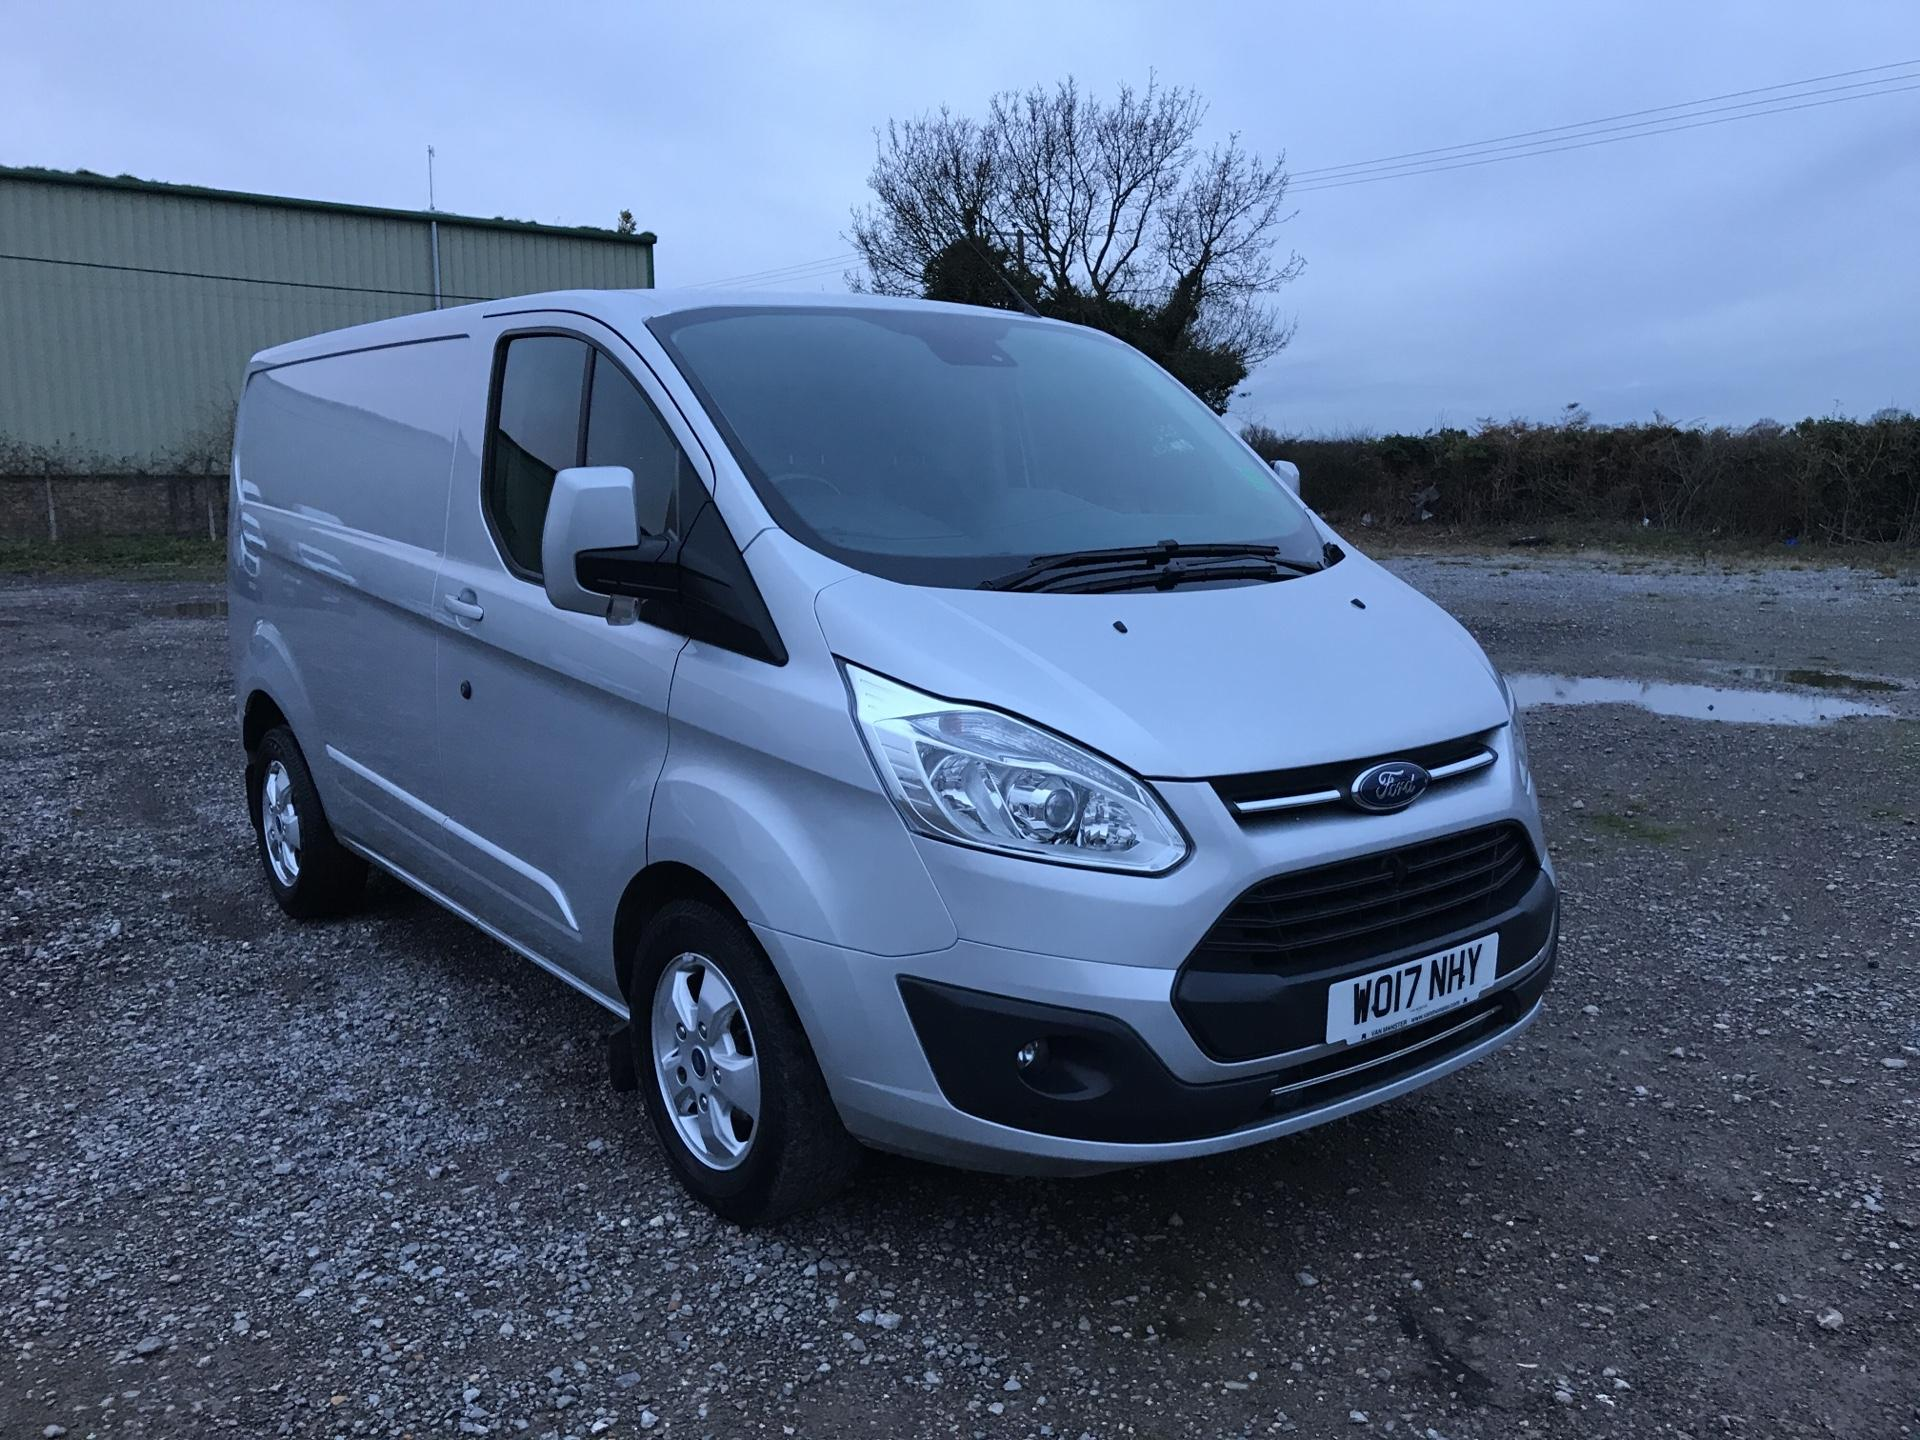 2017 Ford Transit Custom  290 L1 DIESEL FWD 2.0 TDCI 130 PS LOW ROOF LIMITED VAN EURO 6 (WO17NHY)